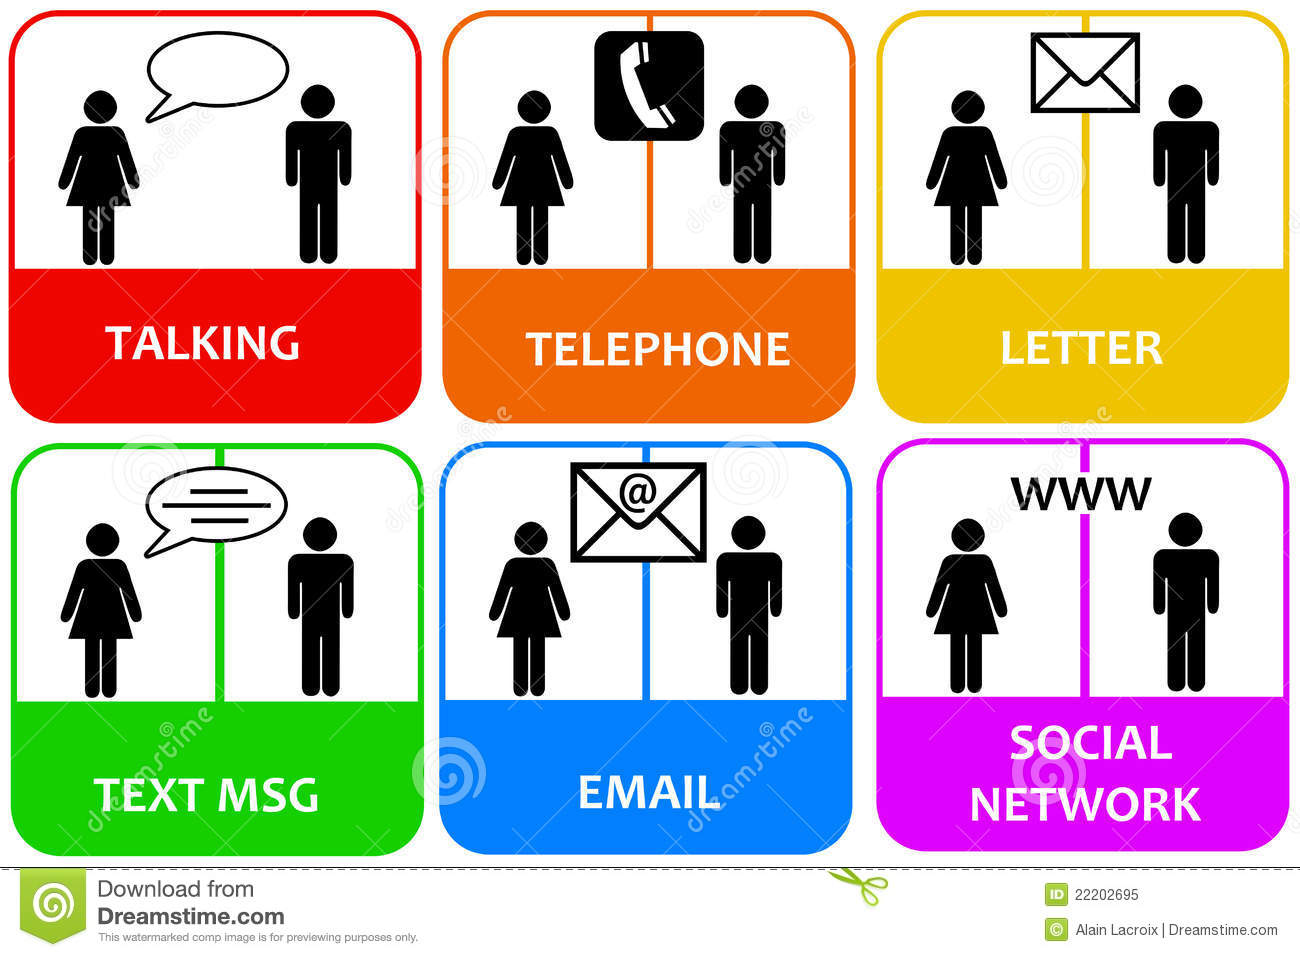 Overview of different kinds of communication between people.